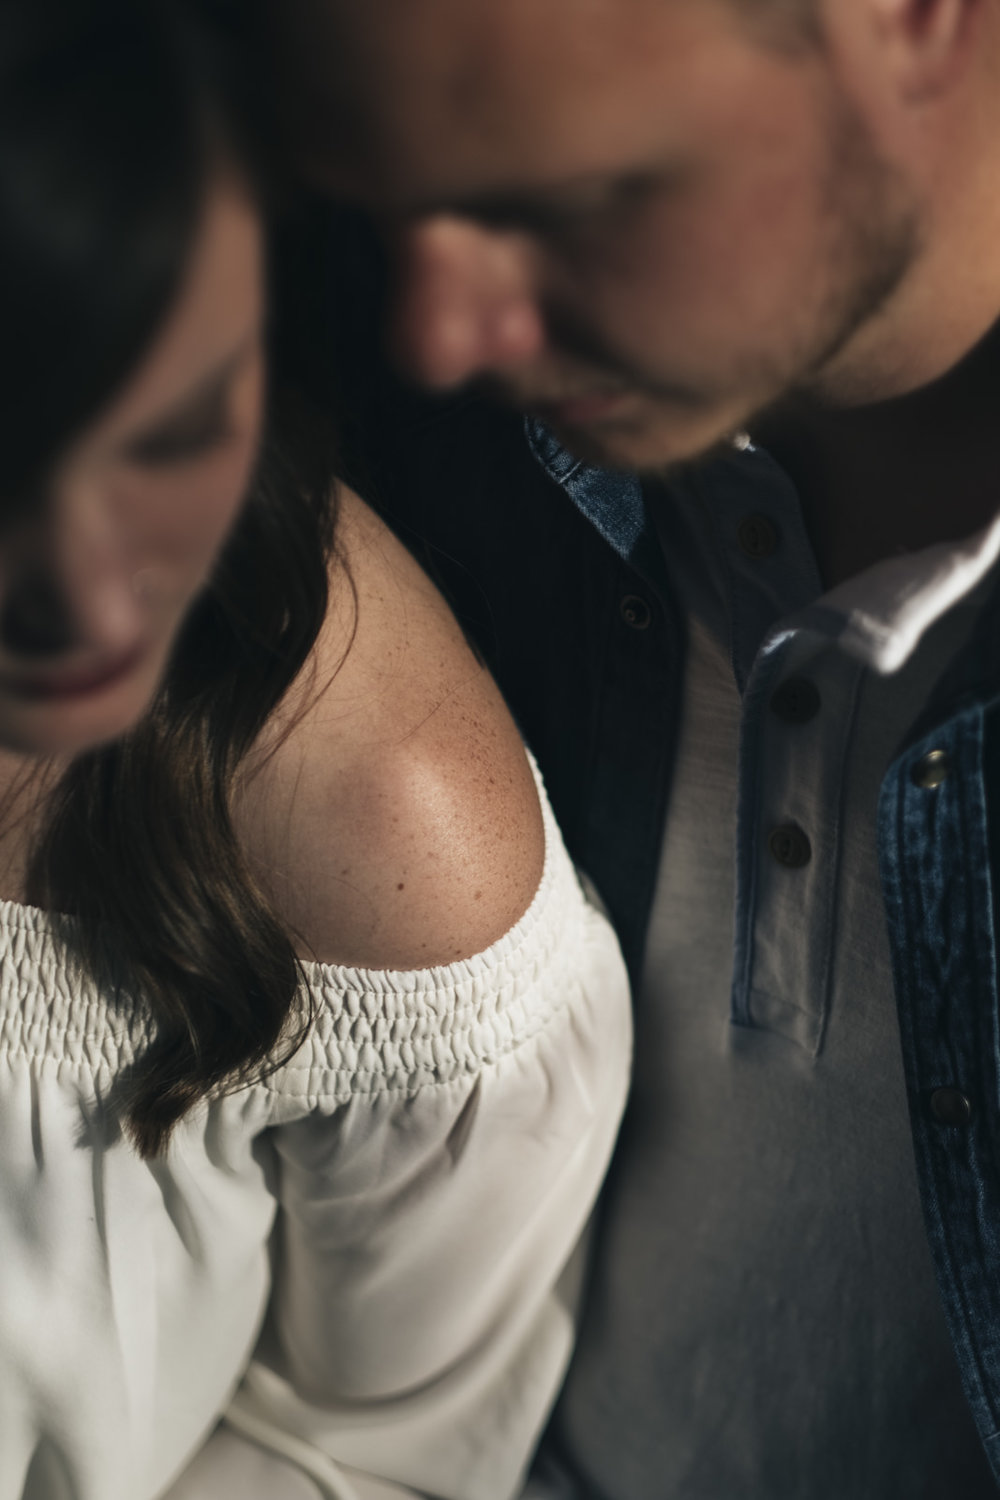 Sweet, intimate portrait of bride and groom to-be at engagement session.